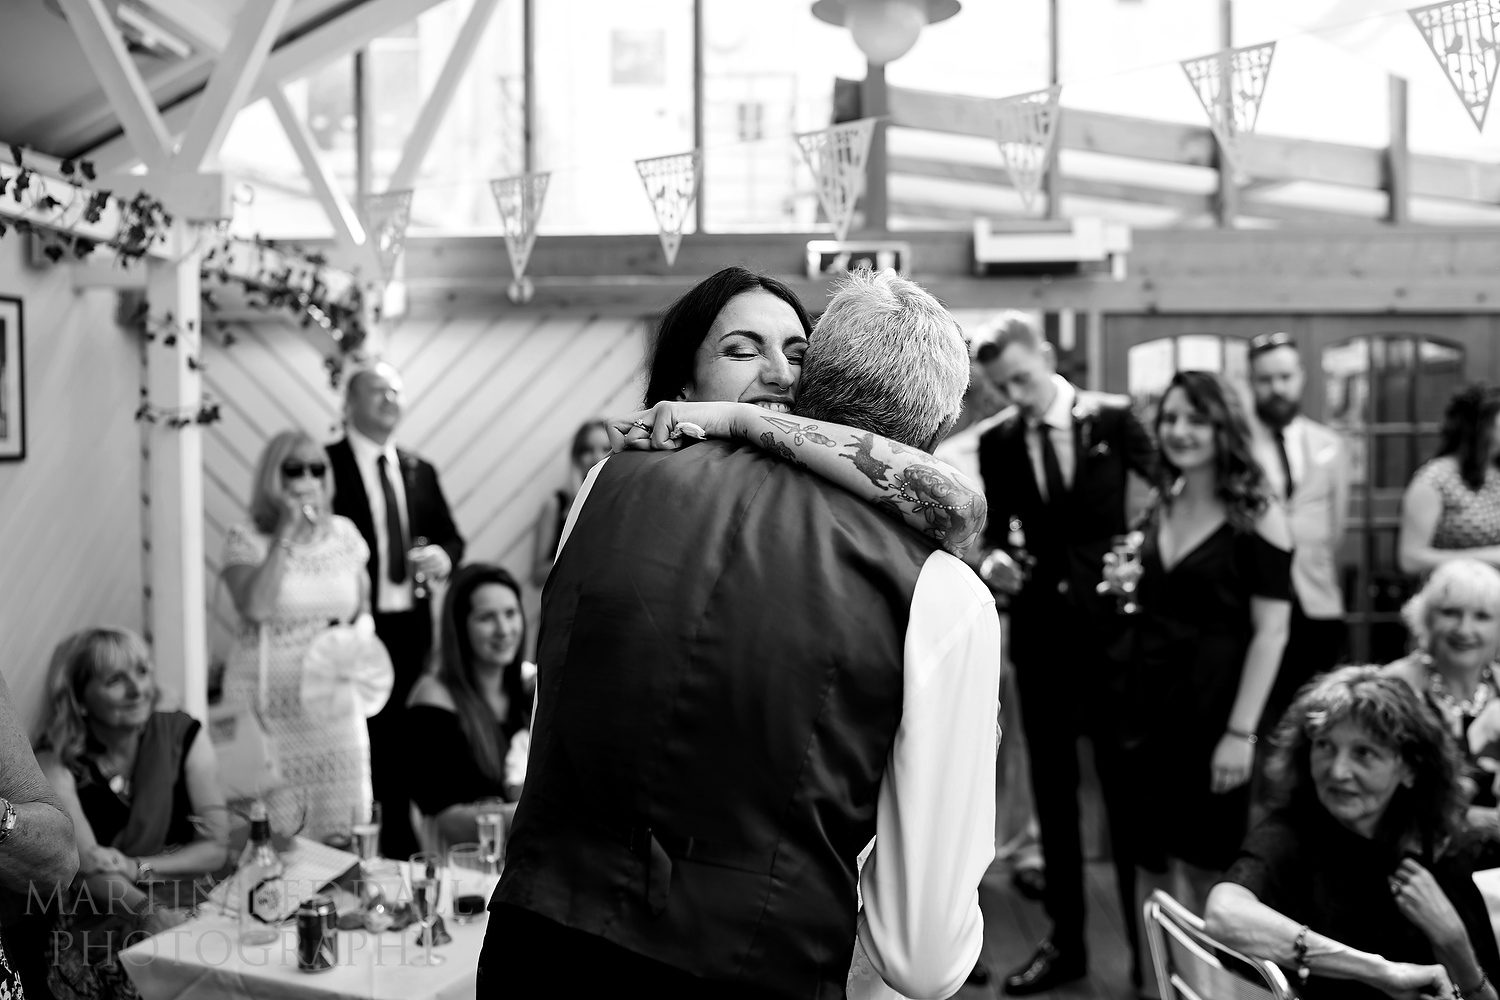 A hug for her father after his speech